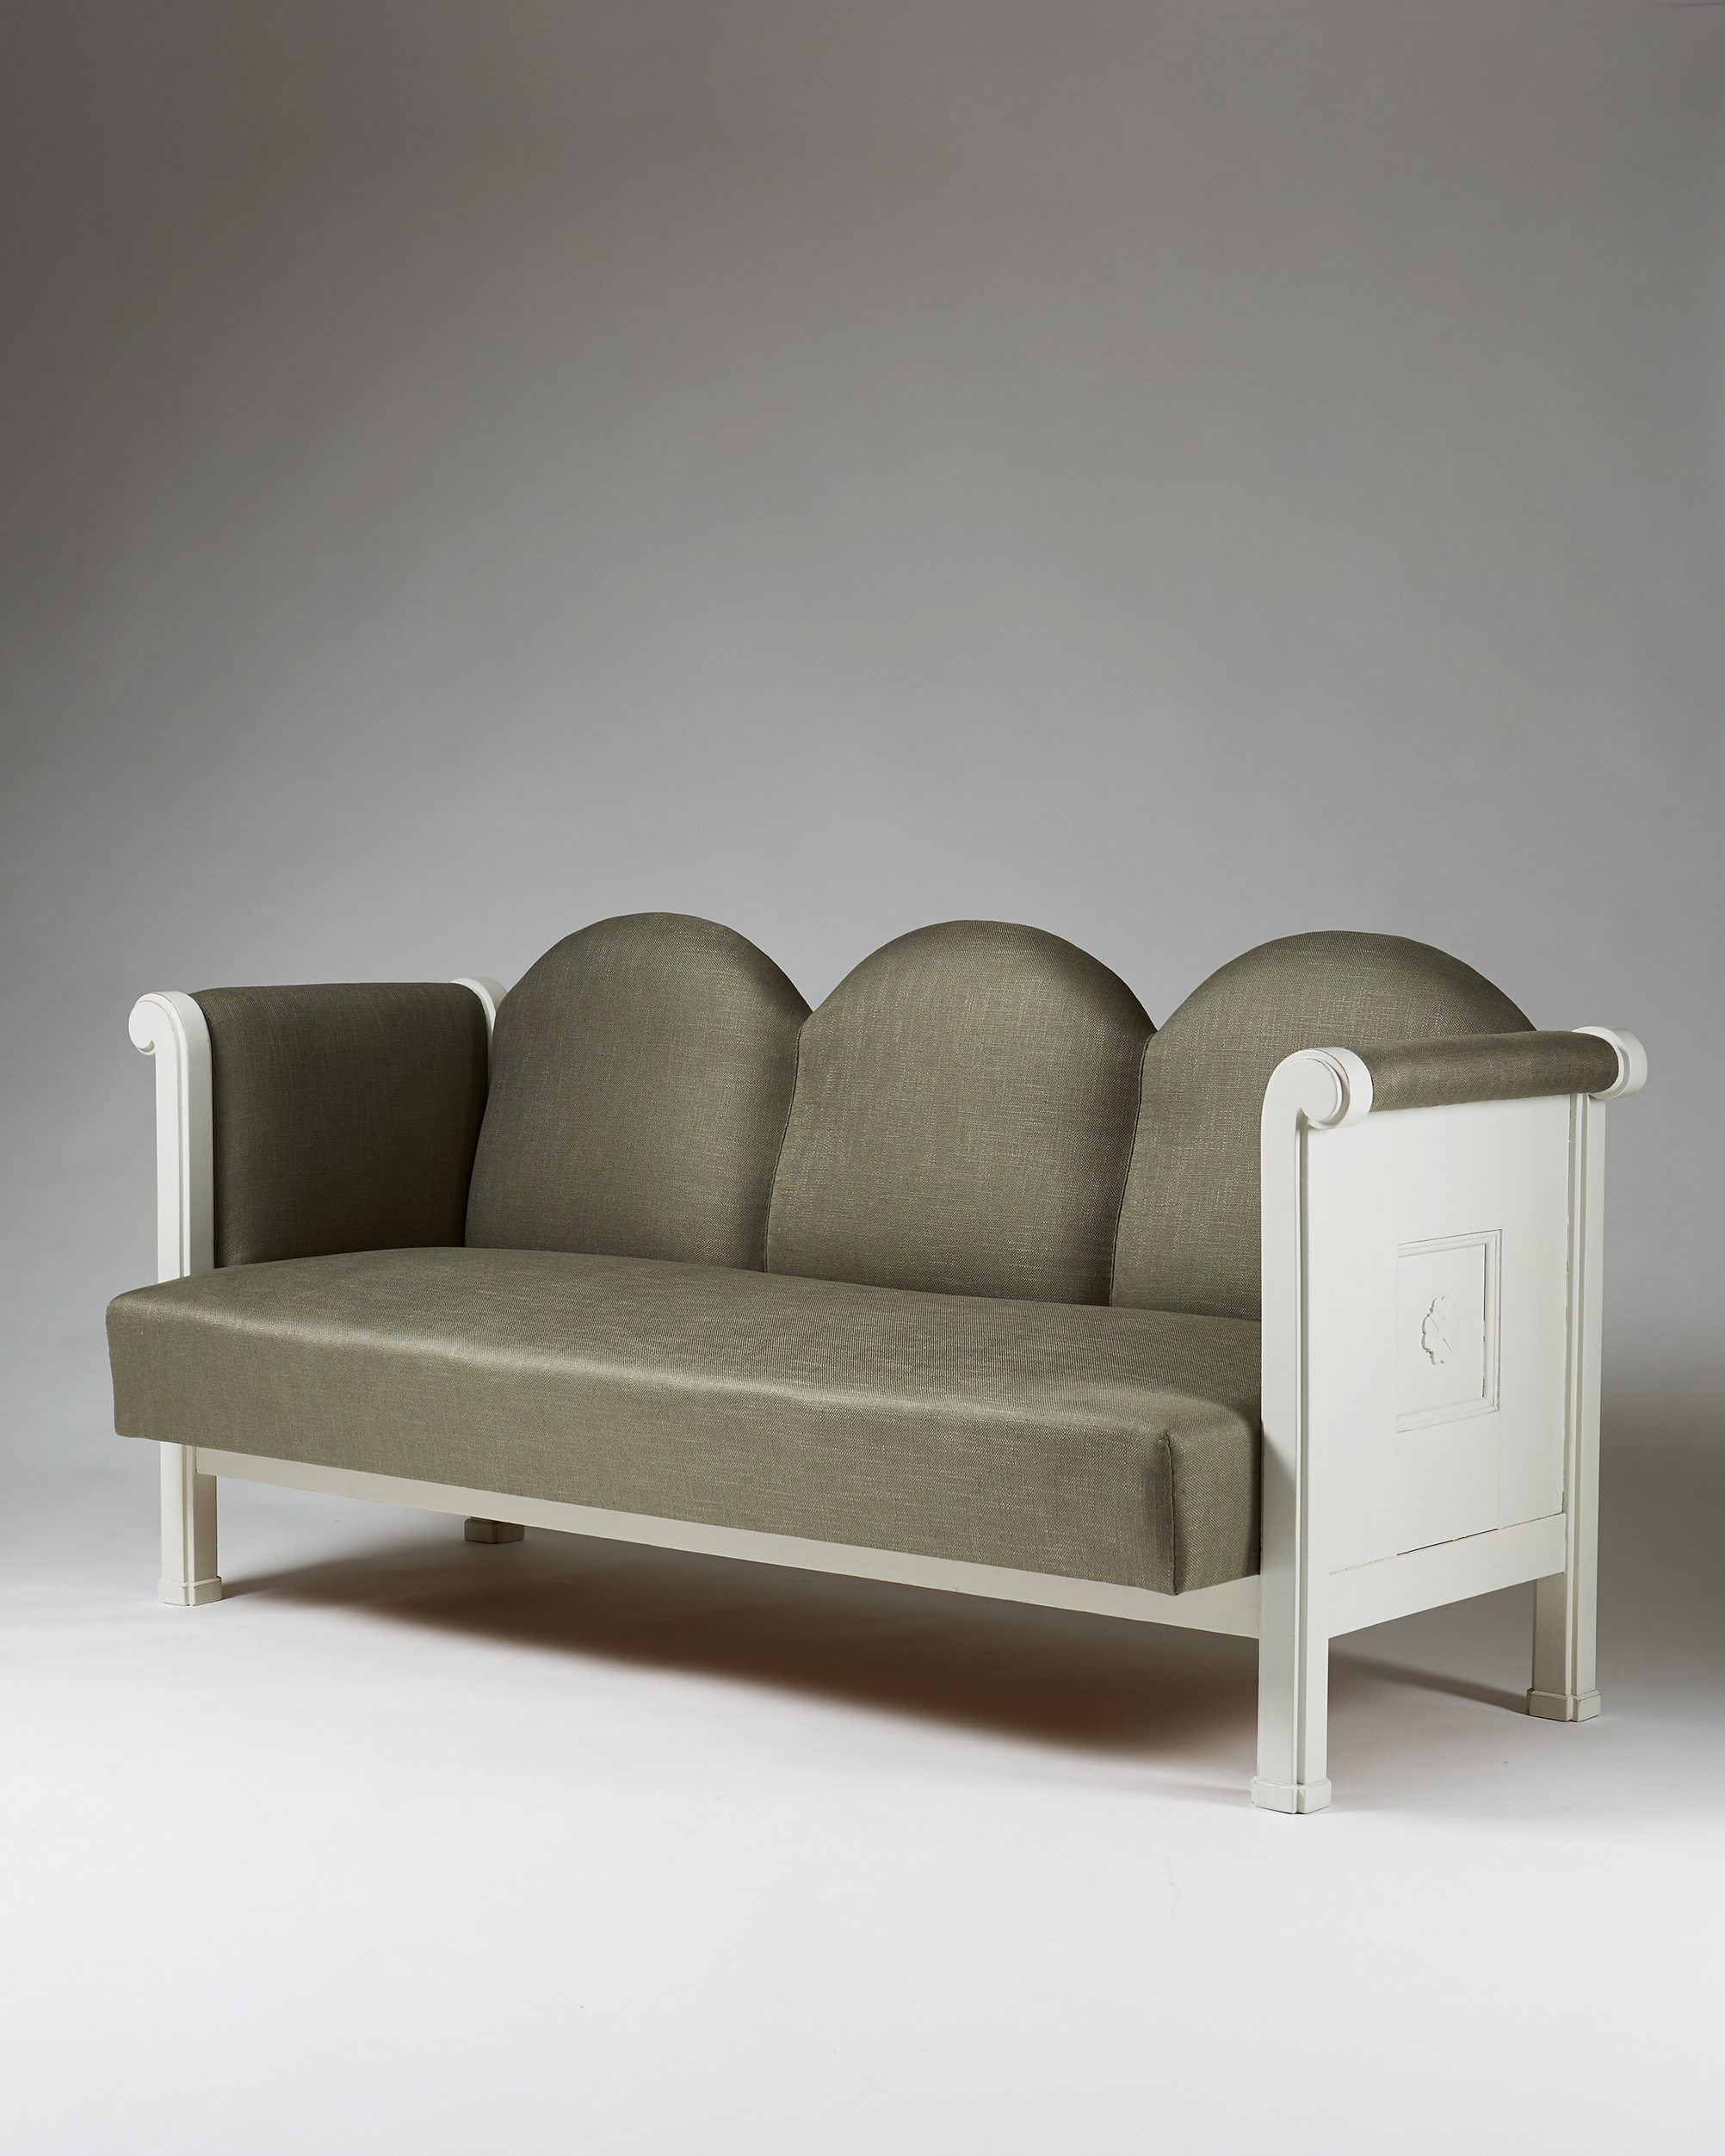 Eliel Saarinen  Sofa Finland, 1907 White painted wood, newly upholstered in linen fabric. 195 x 86 x 88 cm